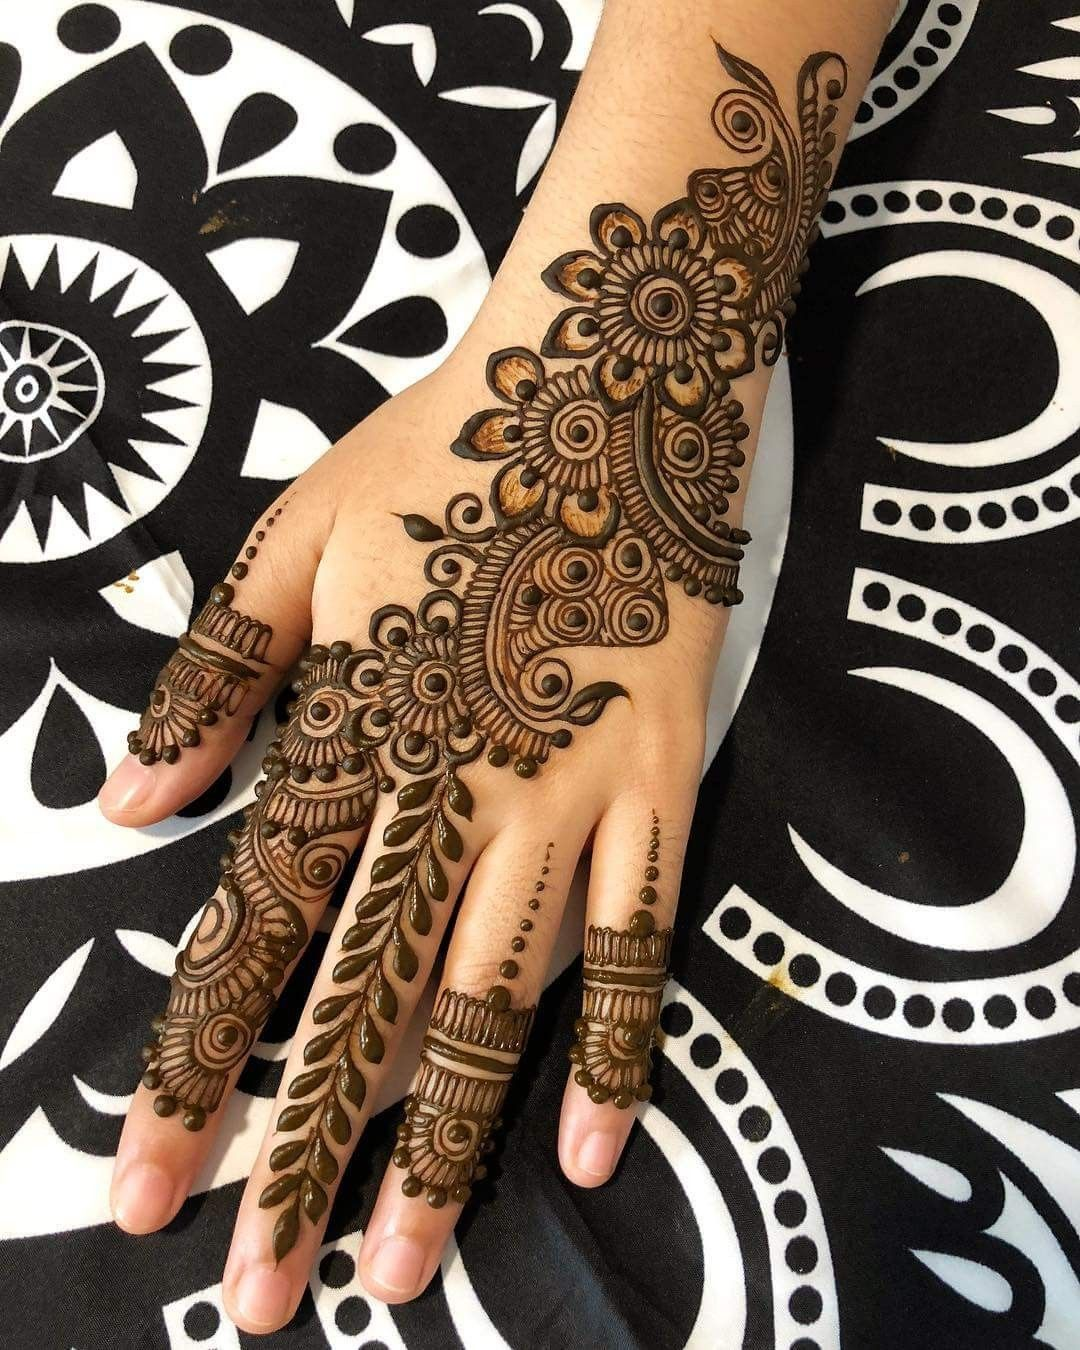 Full mehndi designs design pictures bridal images mehandi also image may contain one or more people and closeup heena close up rh pinterest